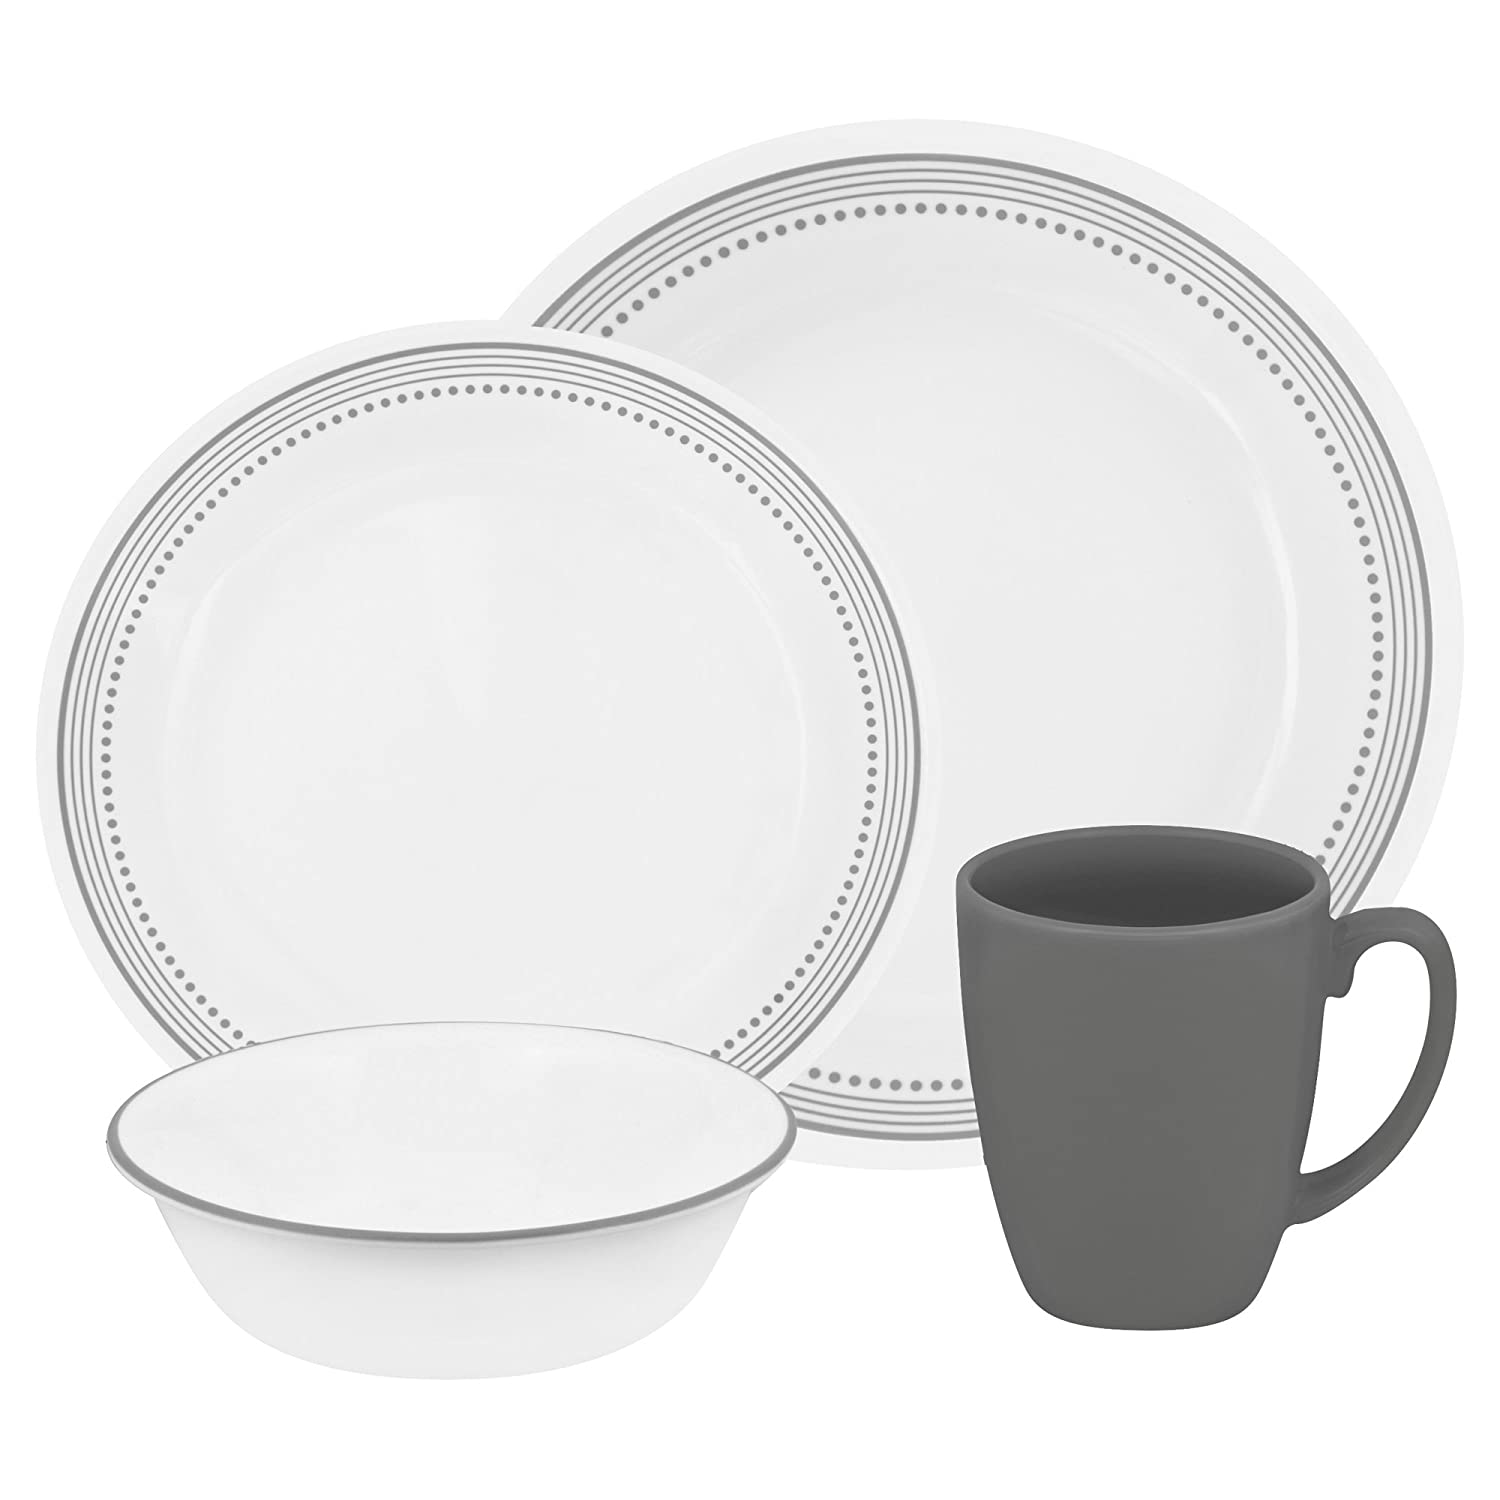 Corelle Vitrelle Glass Mystic Chip and Break Resistant Dinner Set, Set of 16, Grey by Corelle 3155